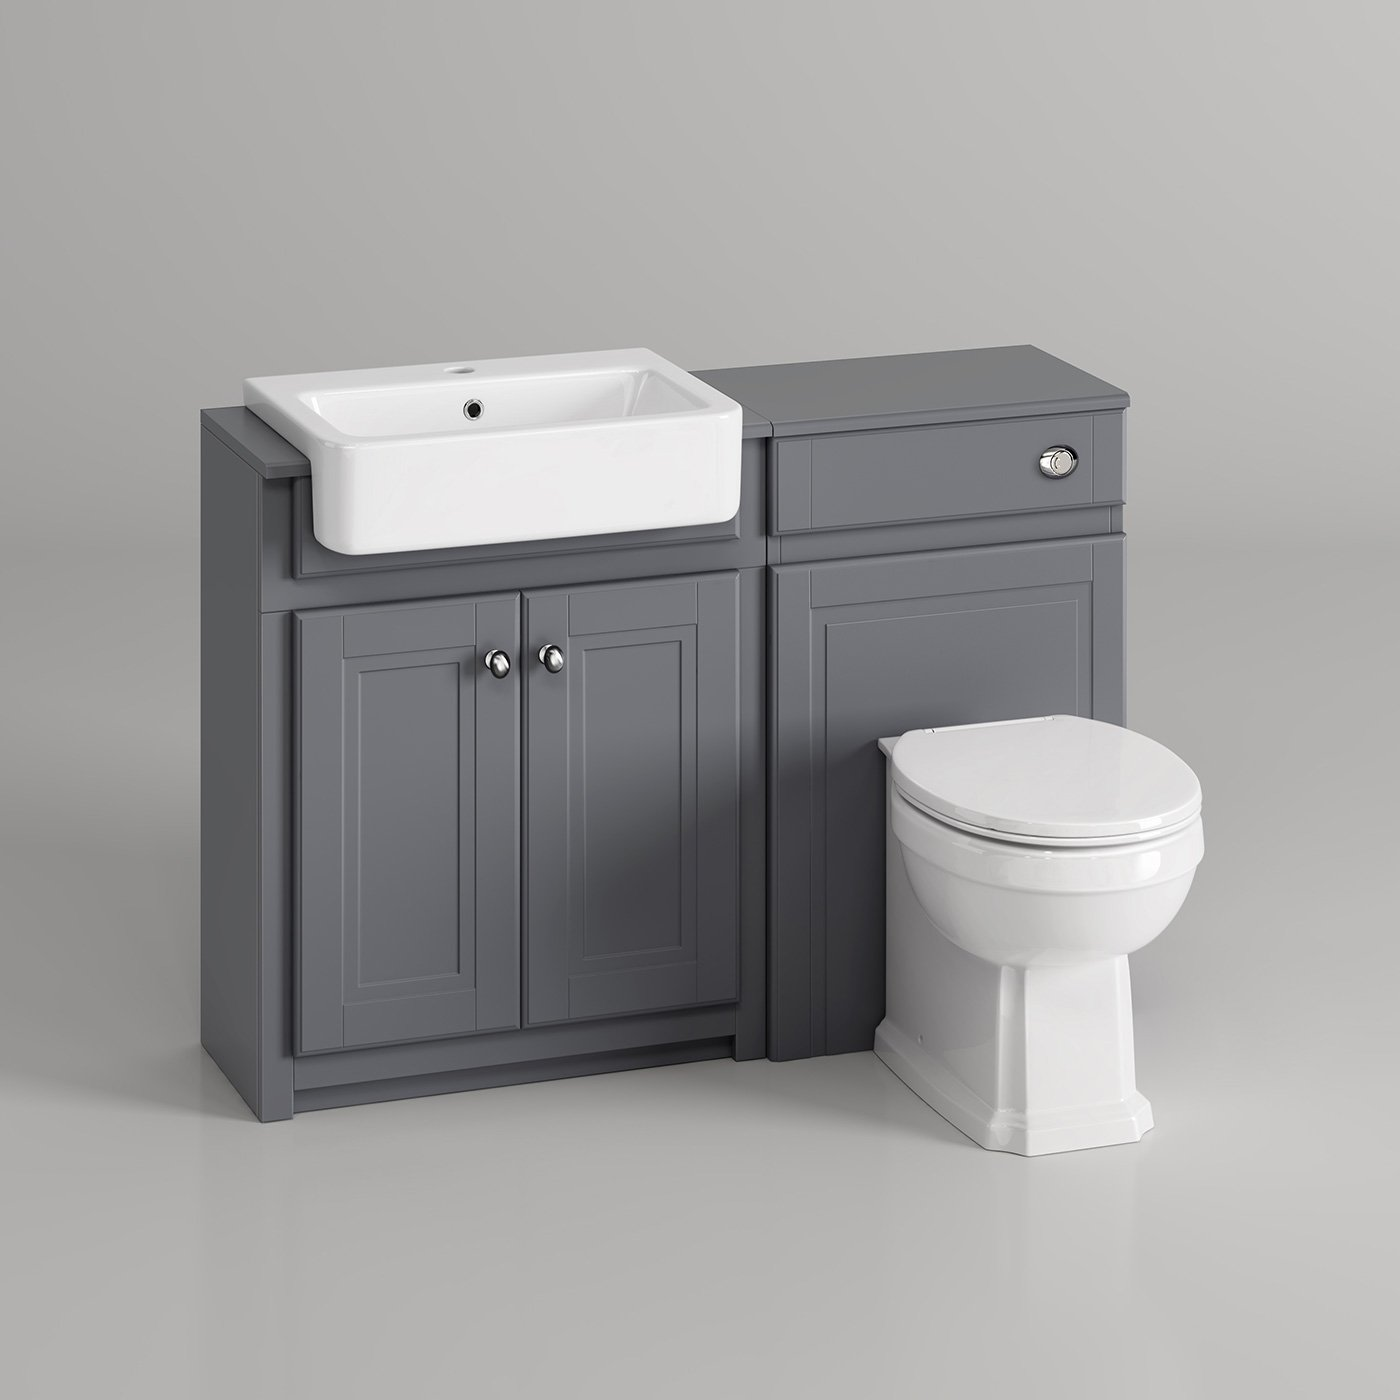 1100mm Combined Vanity Unit Toilet Basin Grey Bathroom Furniture Storage  Sink: IBathUK: Amazon.co.uk: Kitchen U0026 Home